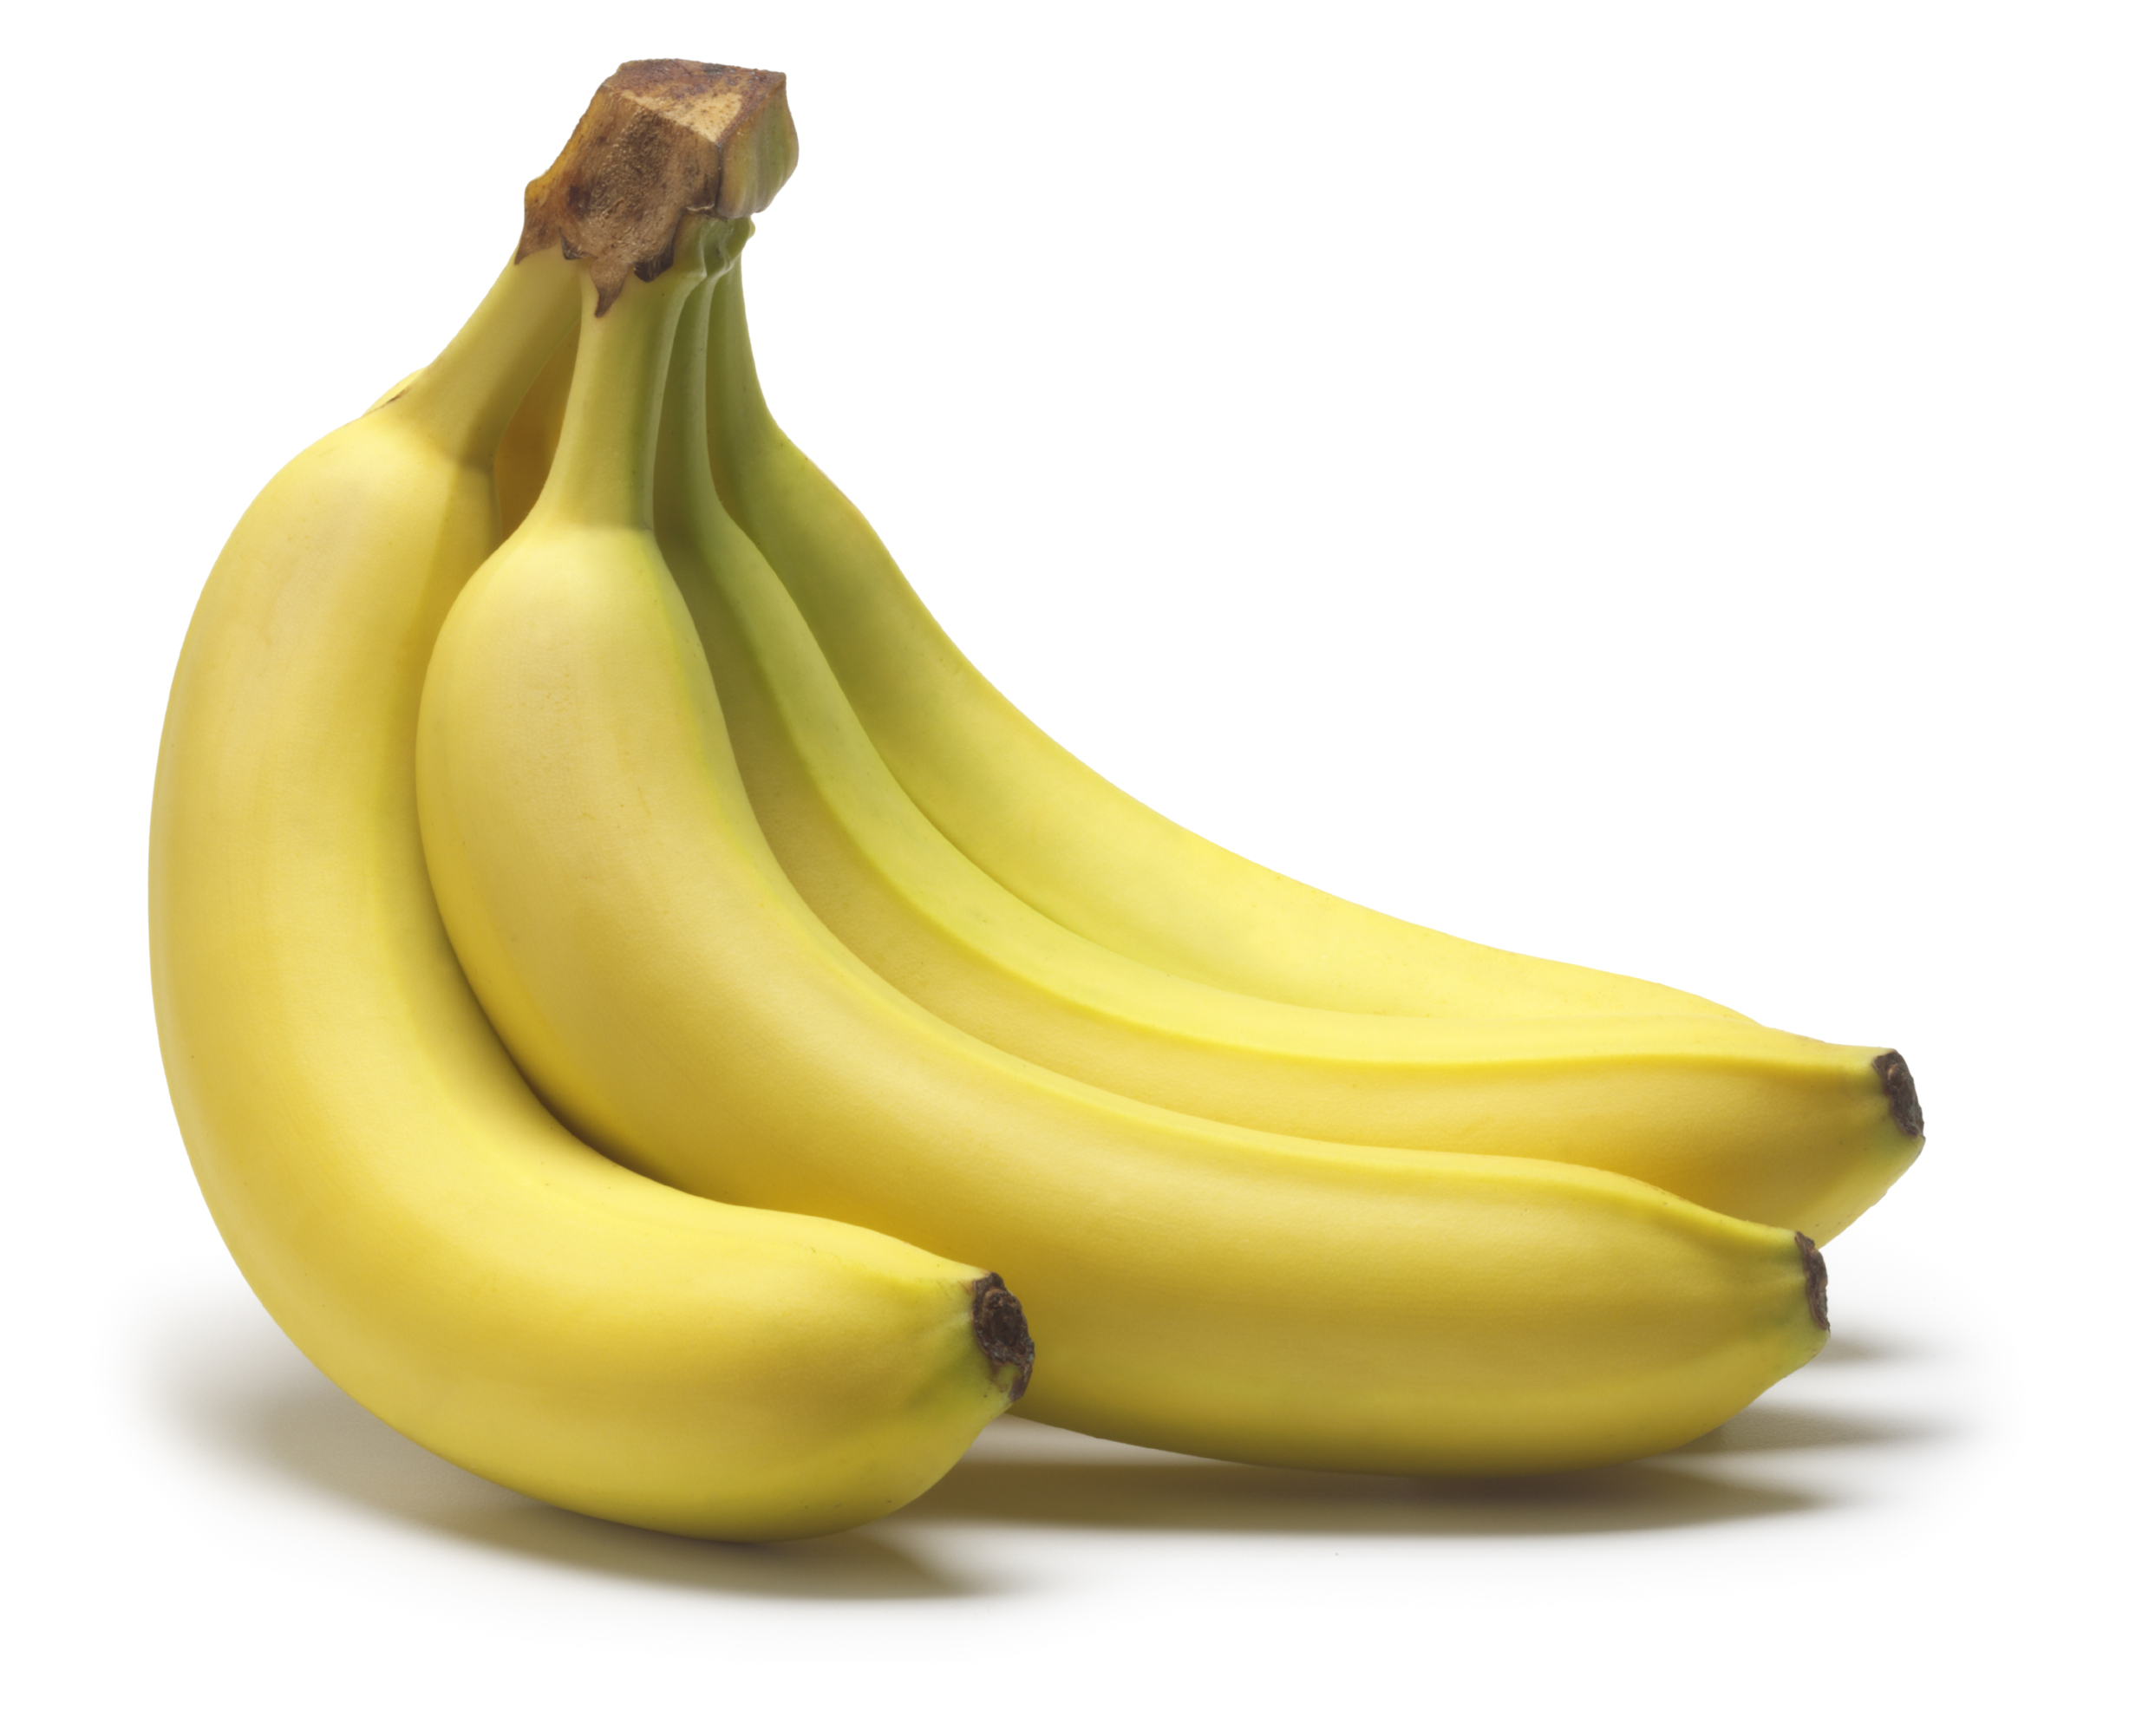 What Foods Are High In Potassium Bananas